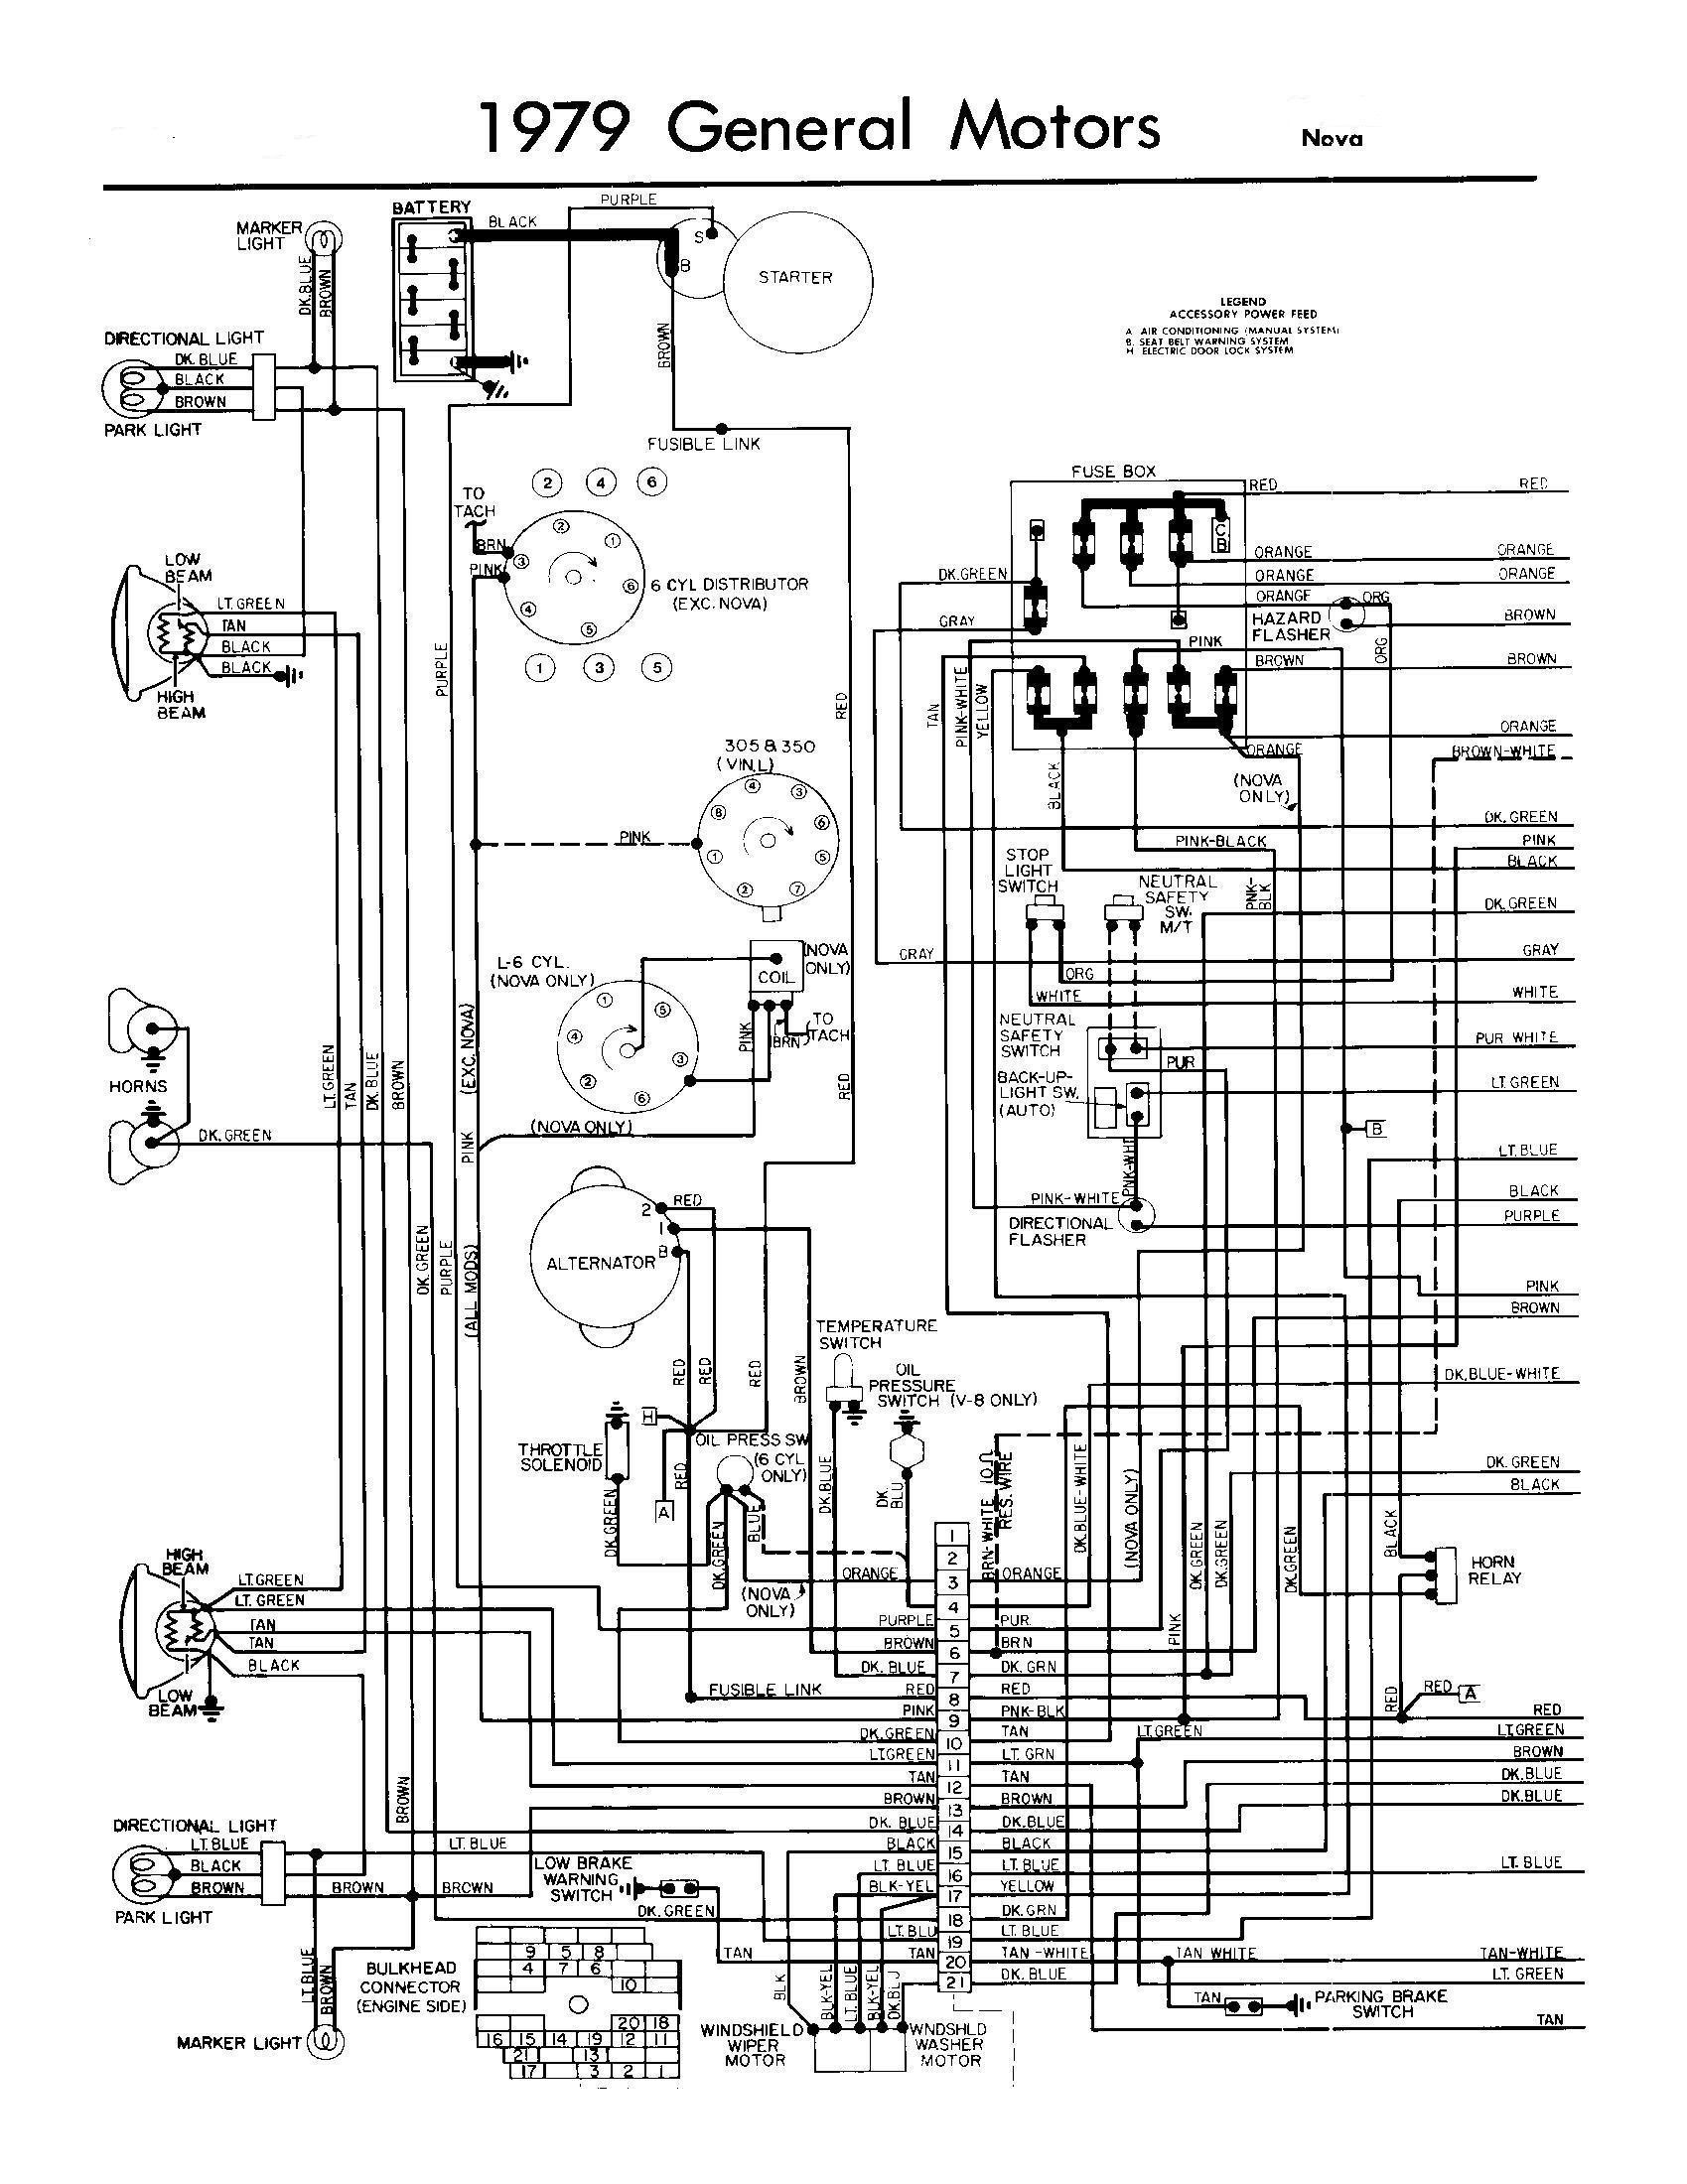 Engine Wiring Diagrams All Generation Wiring Schematics Chevy Nova forum Of  Engine Wiring Diagrams Wiring Diagram